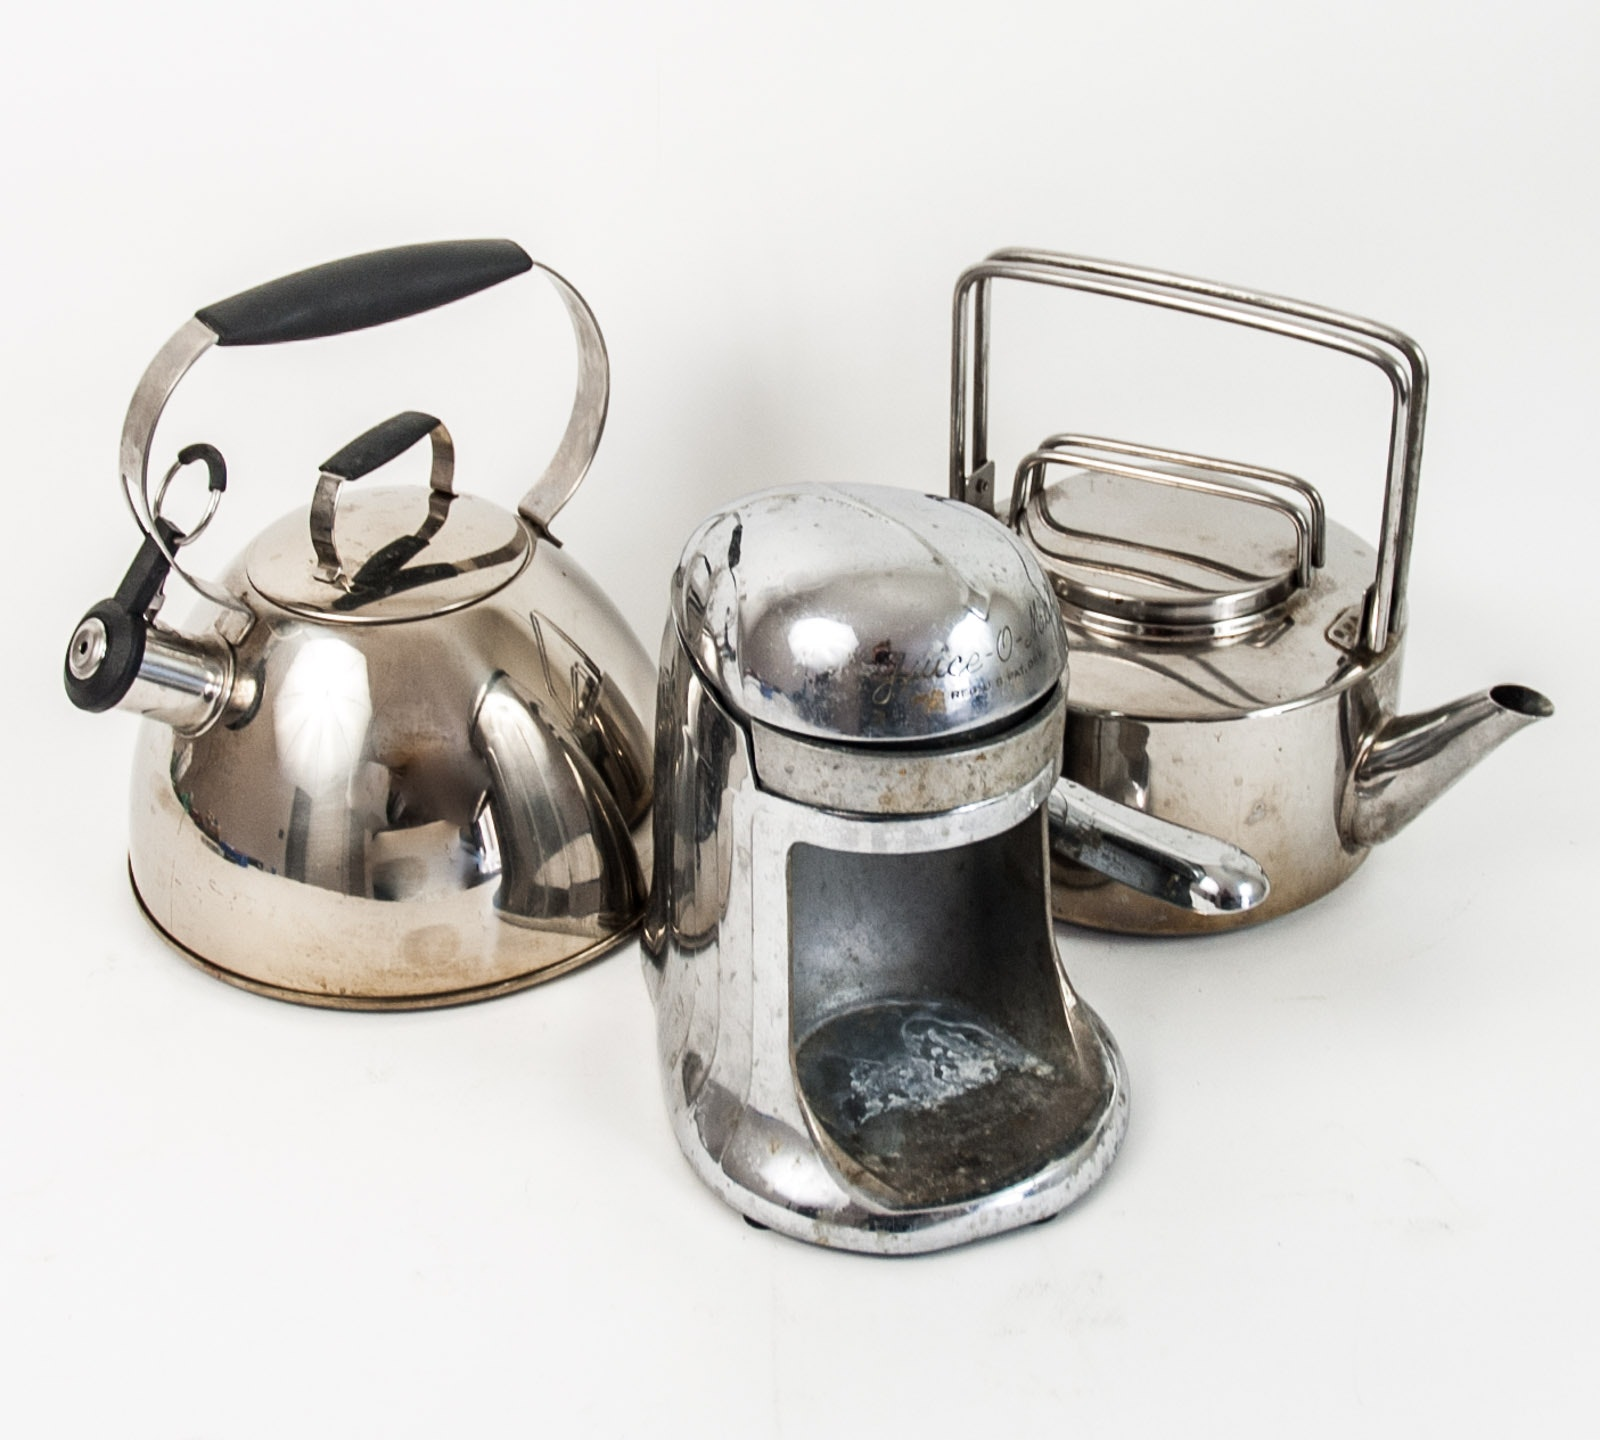 Grouping of Chrome Kitchenware